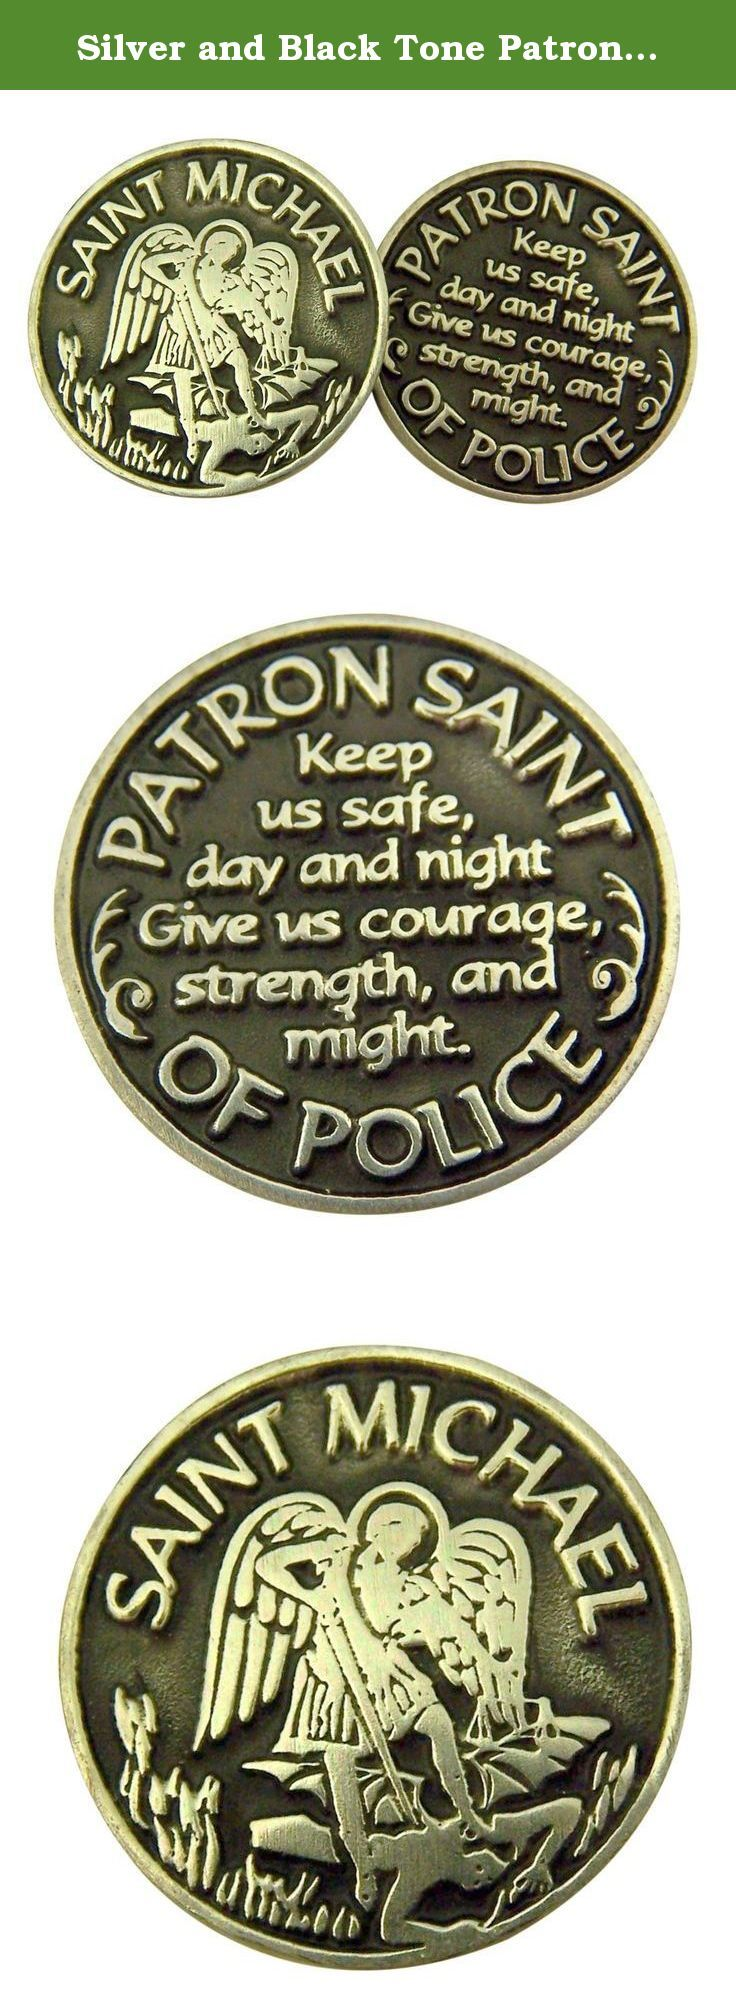 Silver and Black Tone Patron of Police Saint Michael Devotional Prayer Token, 1 1/8 Inch. Tokens are made of zinc alloy and enamel. Keep in your pocket, wallet, or purse as a daily devotional reminder.